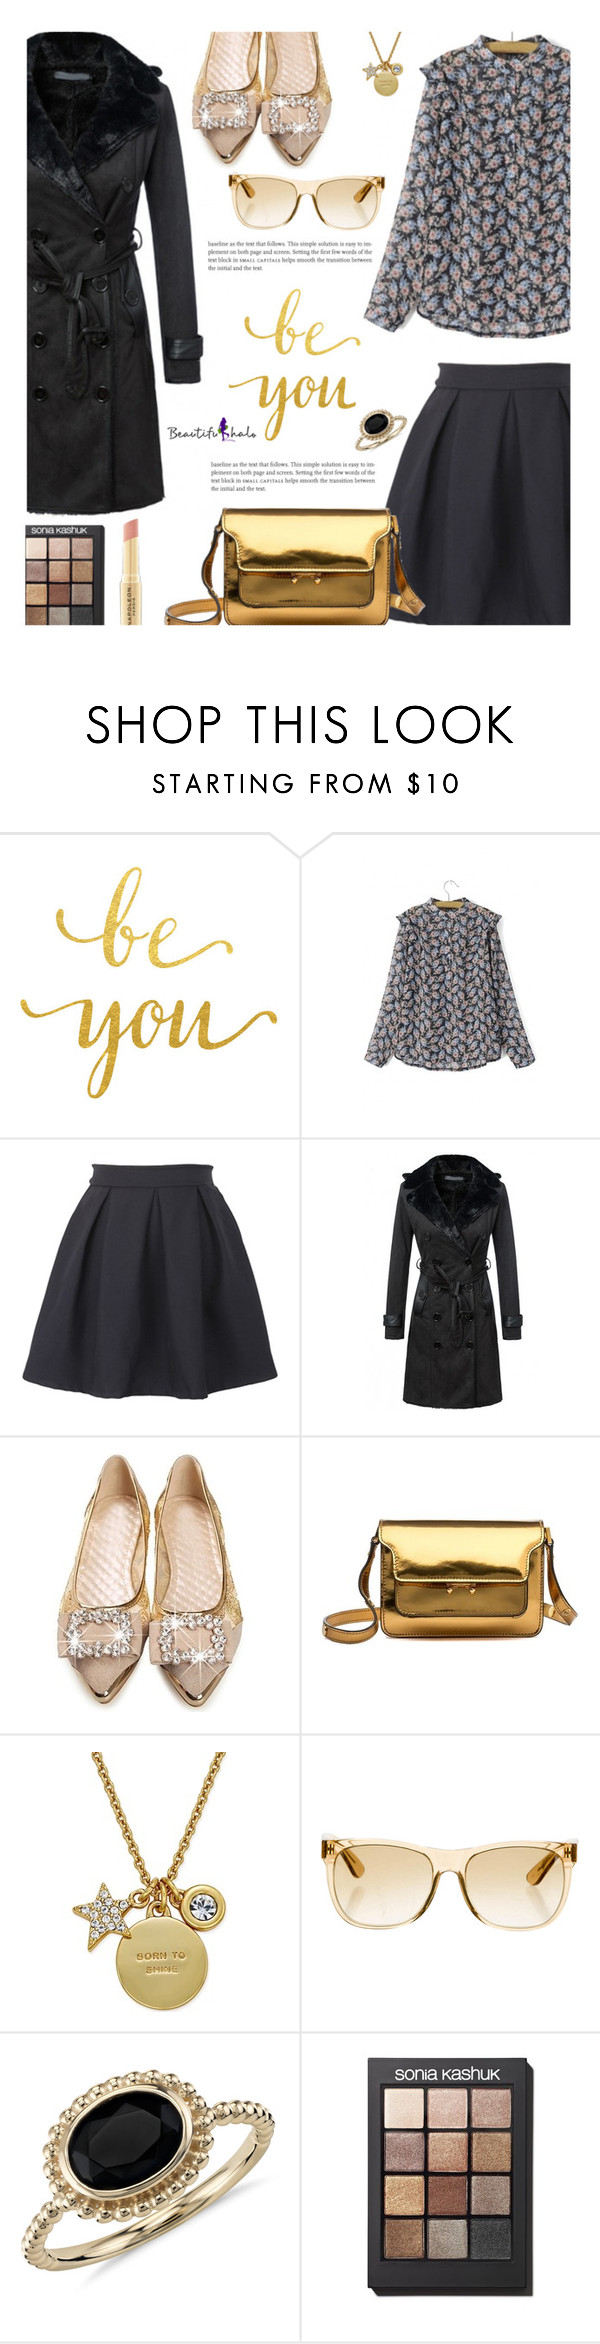 """""""Beautifulhalo.com: Be you!"""" by hamaly ❤ liked on Polyvore featuring Marni, Kate Spade, RetroSuperFuture, Blue Nile, Sonia Kashuk, Napoleon Perdis, shoes, ootd, skirts and coats"""